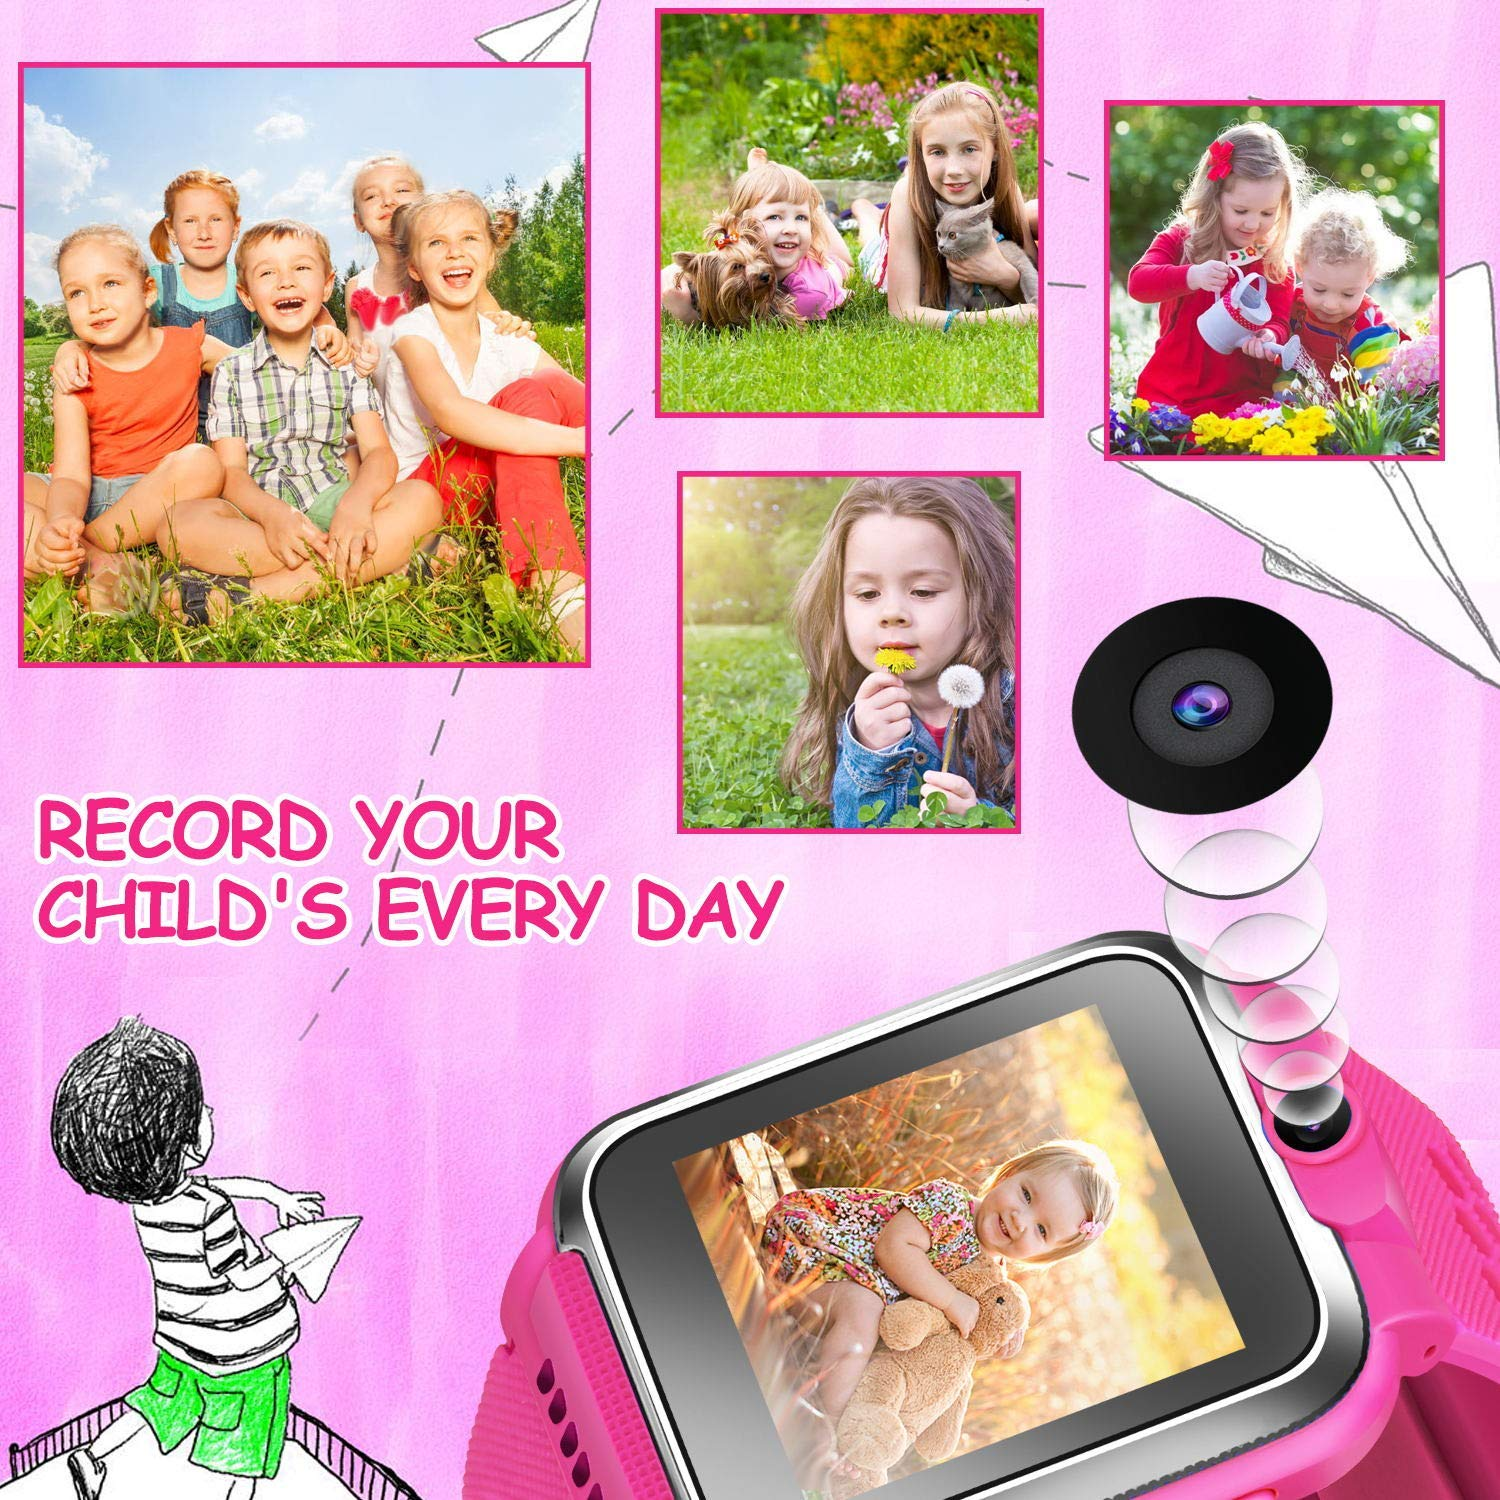 ZOPPRI Kids Game smartwatch Touch Screen Kinds of Games Kids Watch Theme Calendar Stopwatch Alarm Clock Photo Timer Multi-Function Watch Toy Gift for 3-12 Years Old boy Girl Birthday Gift (Pink) by ZOPPRI (Image #6)